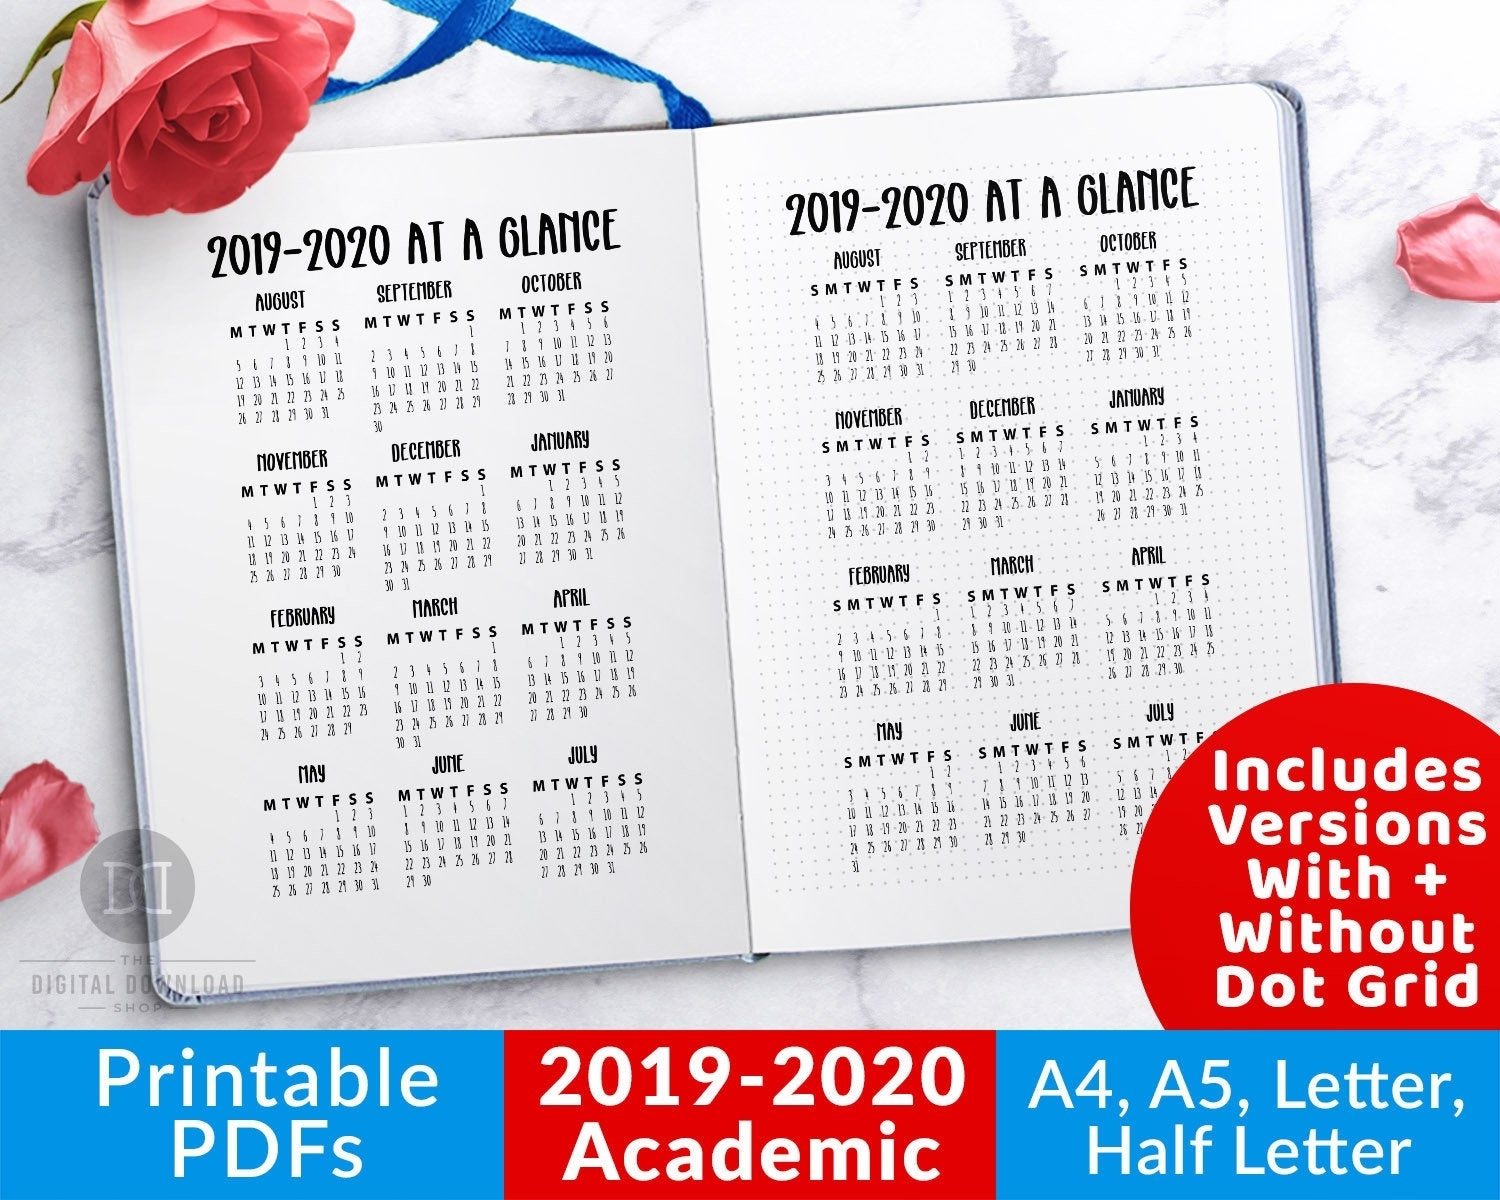 2019-2020 Academic Year At A Glance Printable 2019 Academic | Etsy throughout Year At A Glance 2019-2020